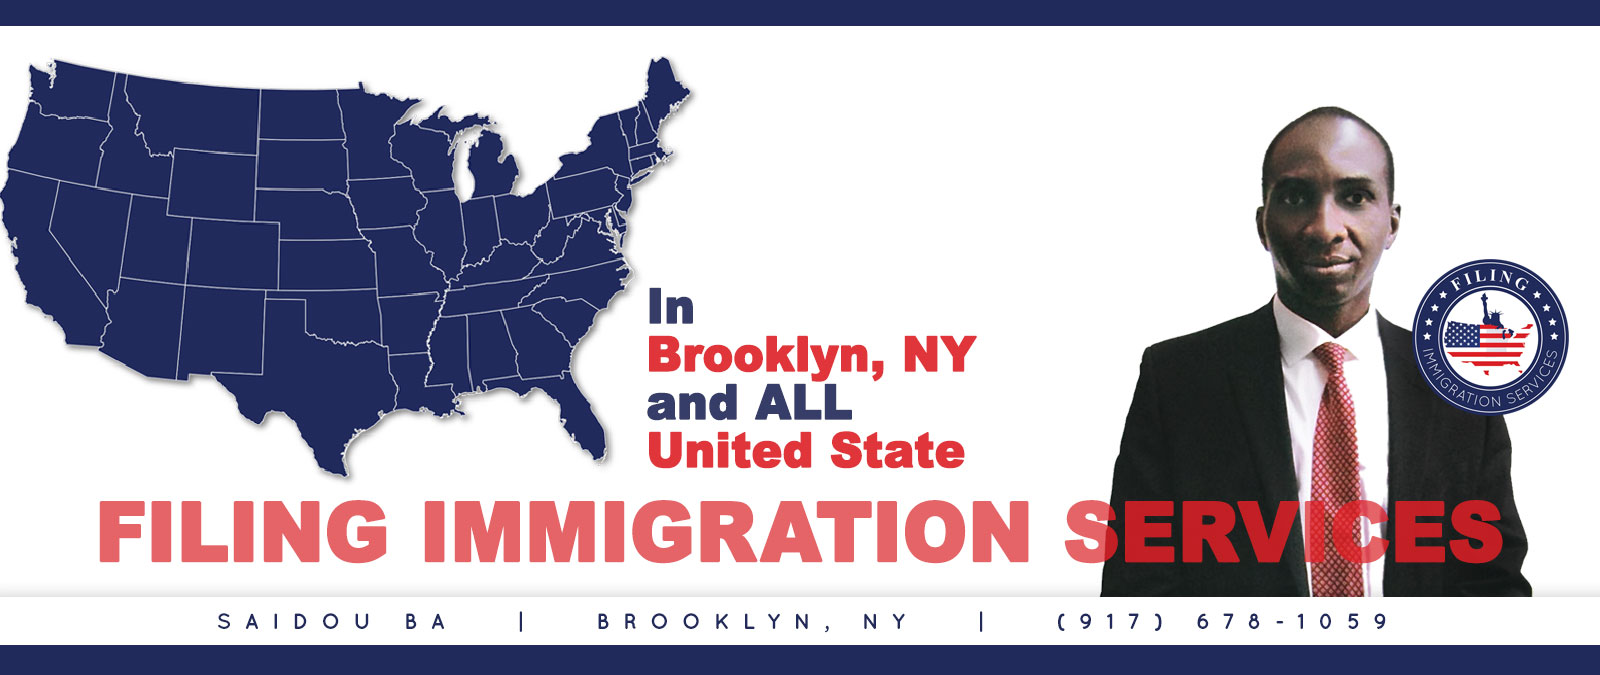 Filing Immigration Services By Saidou Web Design and Development by Andrea Studios